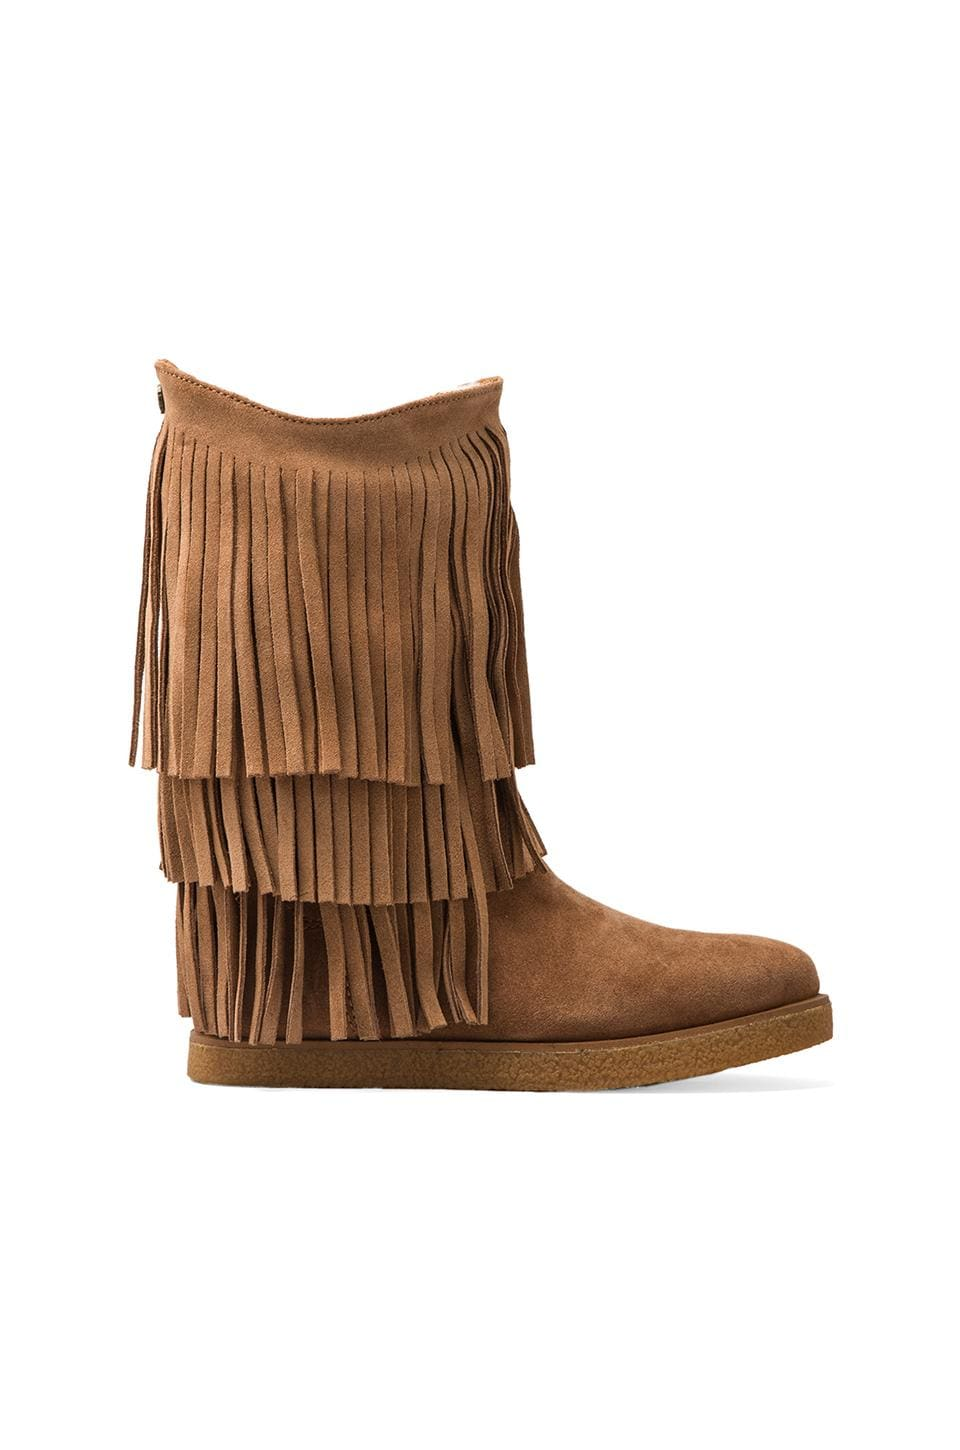 Koolaburra Josie Fringe with Sheep Faux Fur and Twinface Sheepskin in Chestnut